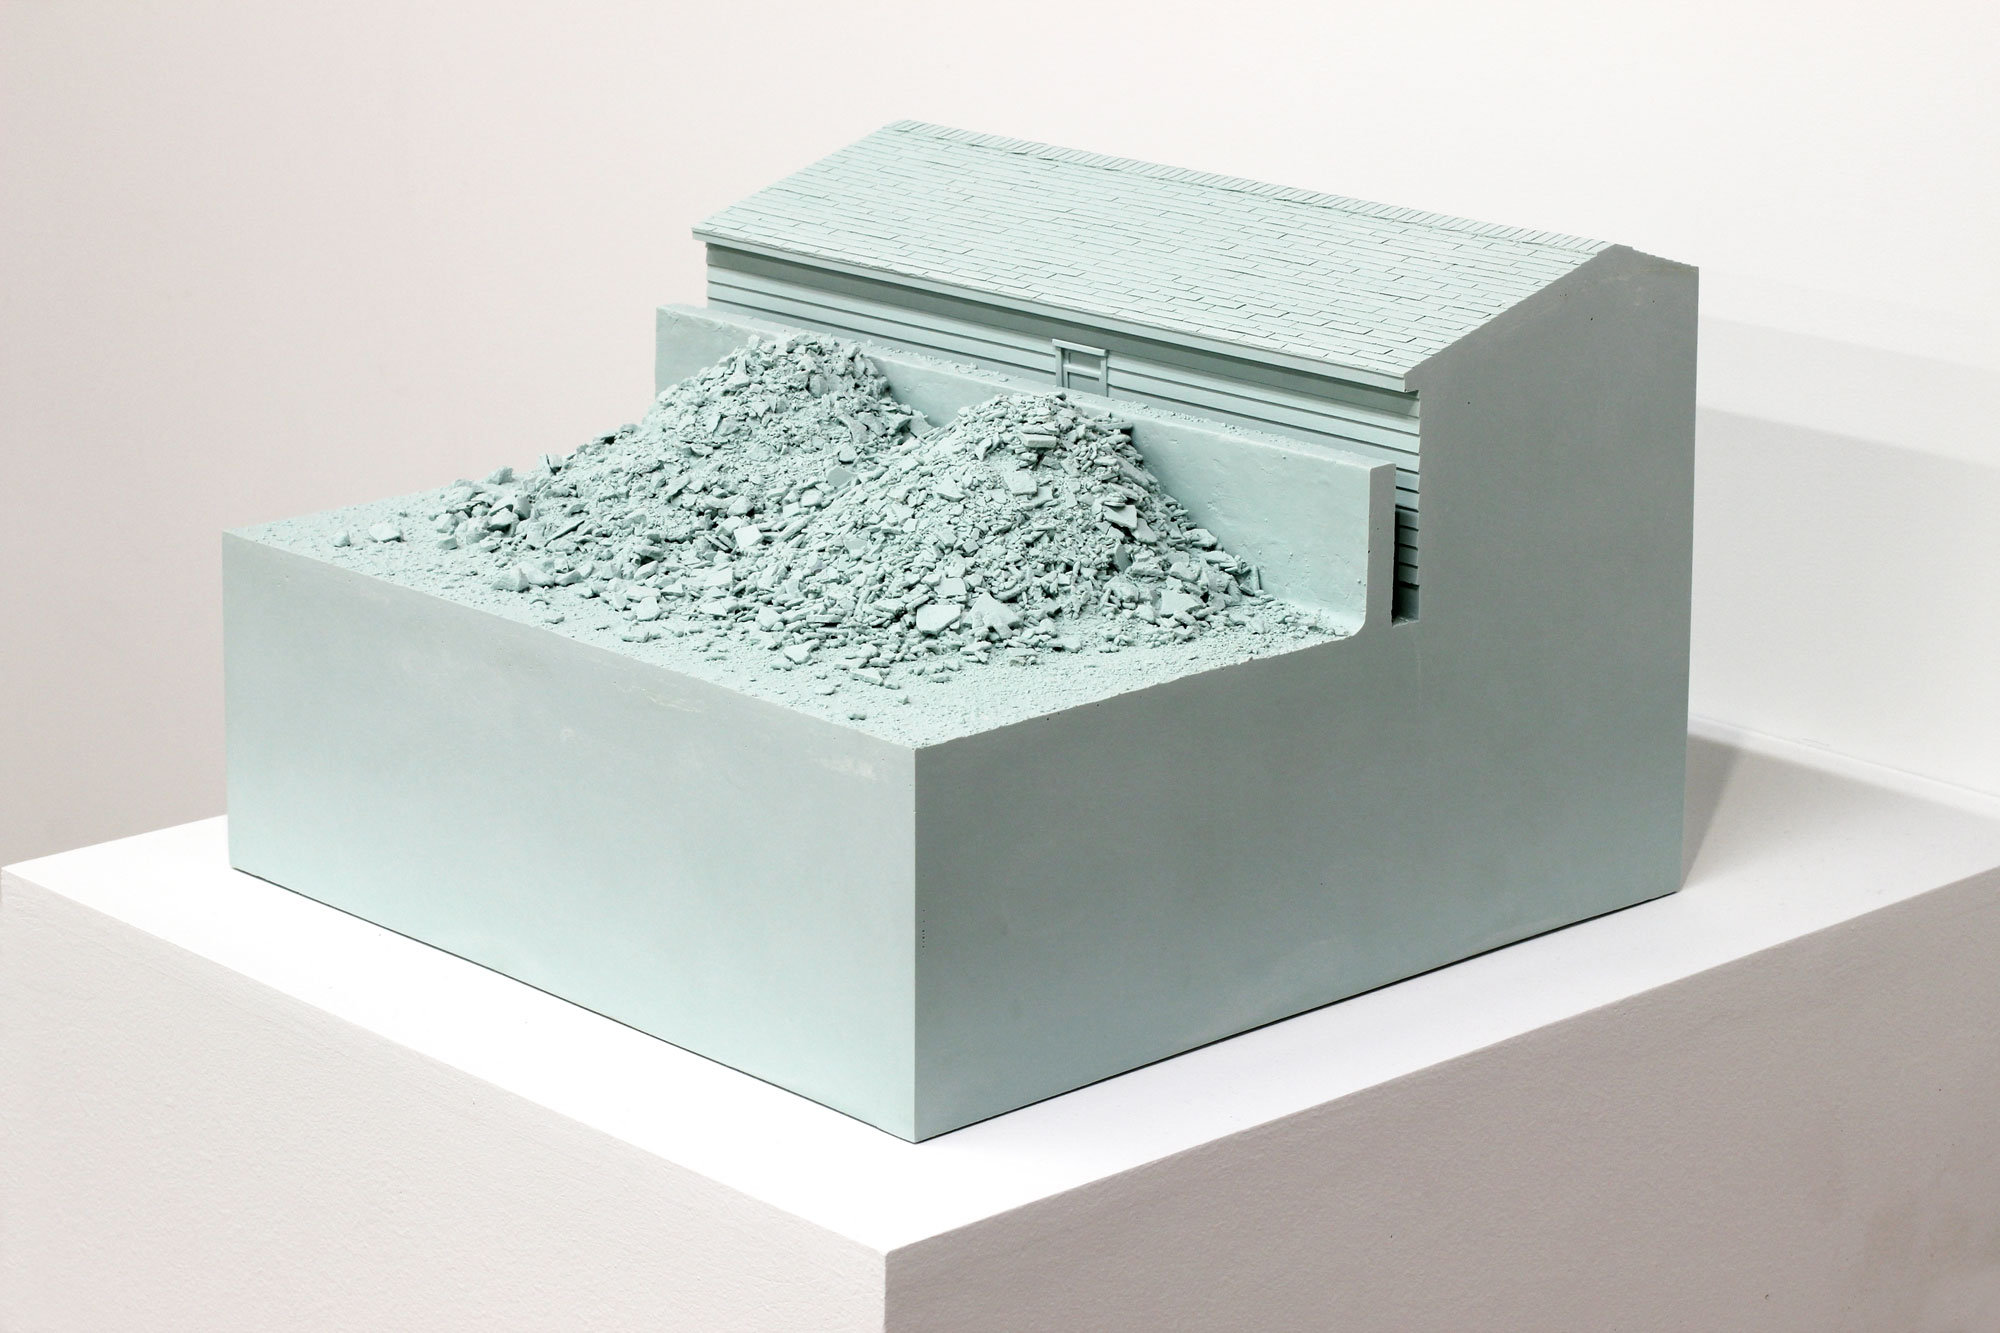 Nathaniel Robinson, Repose, 2015, pigmented polyurethane resin, 10.5h x 14w x 14d in.